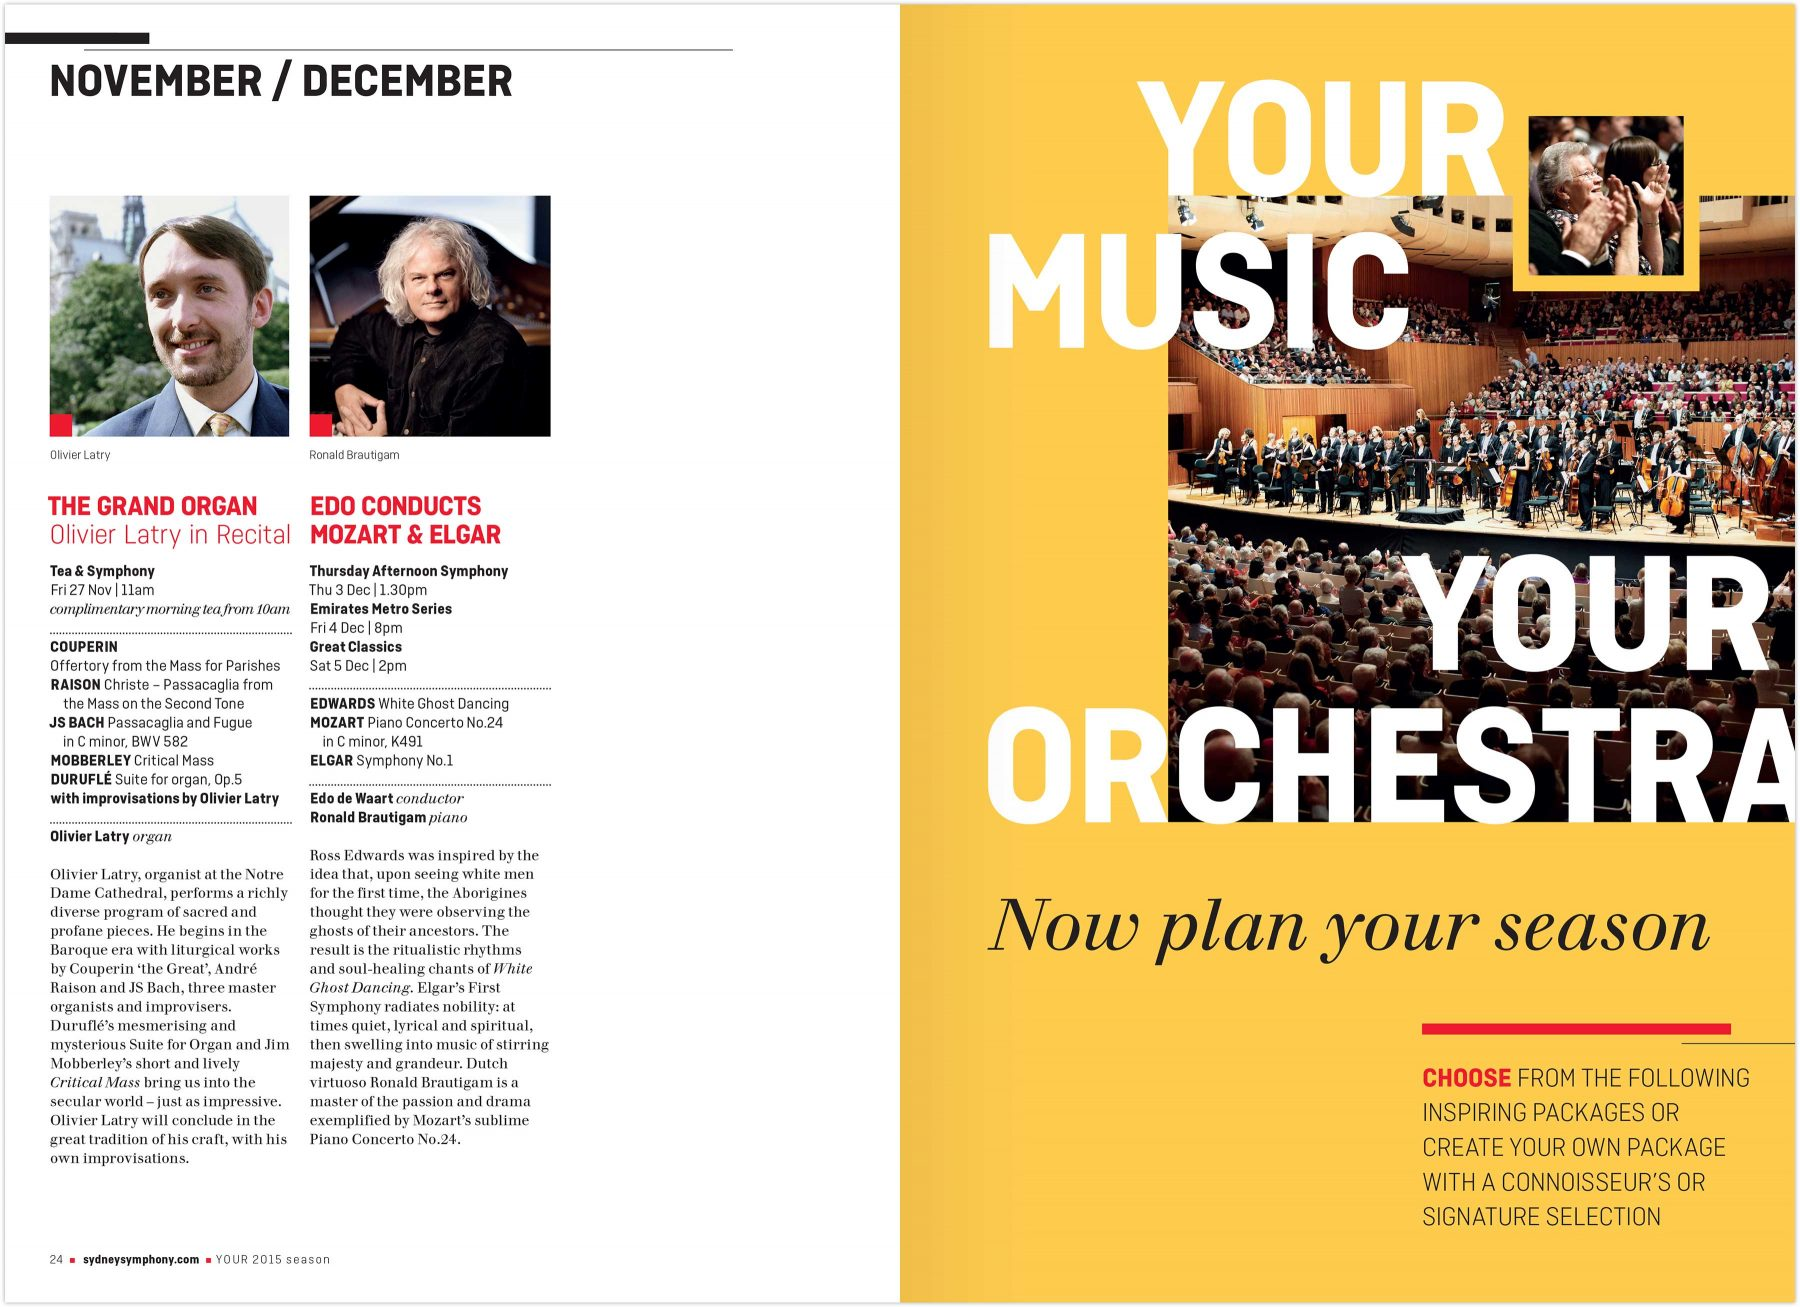 Your Music, Your Orchestra interior page